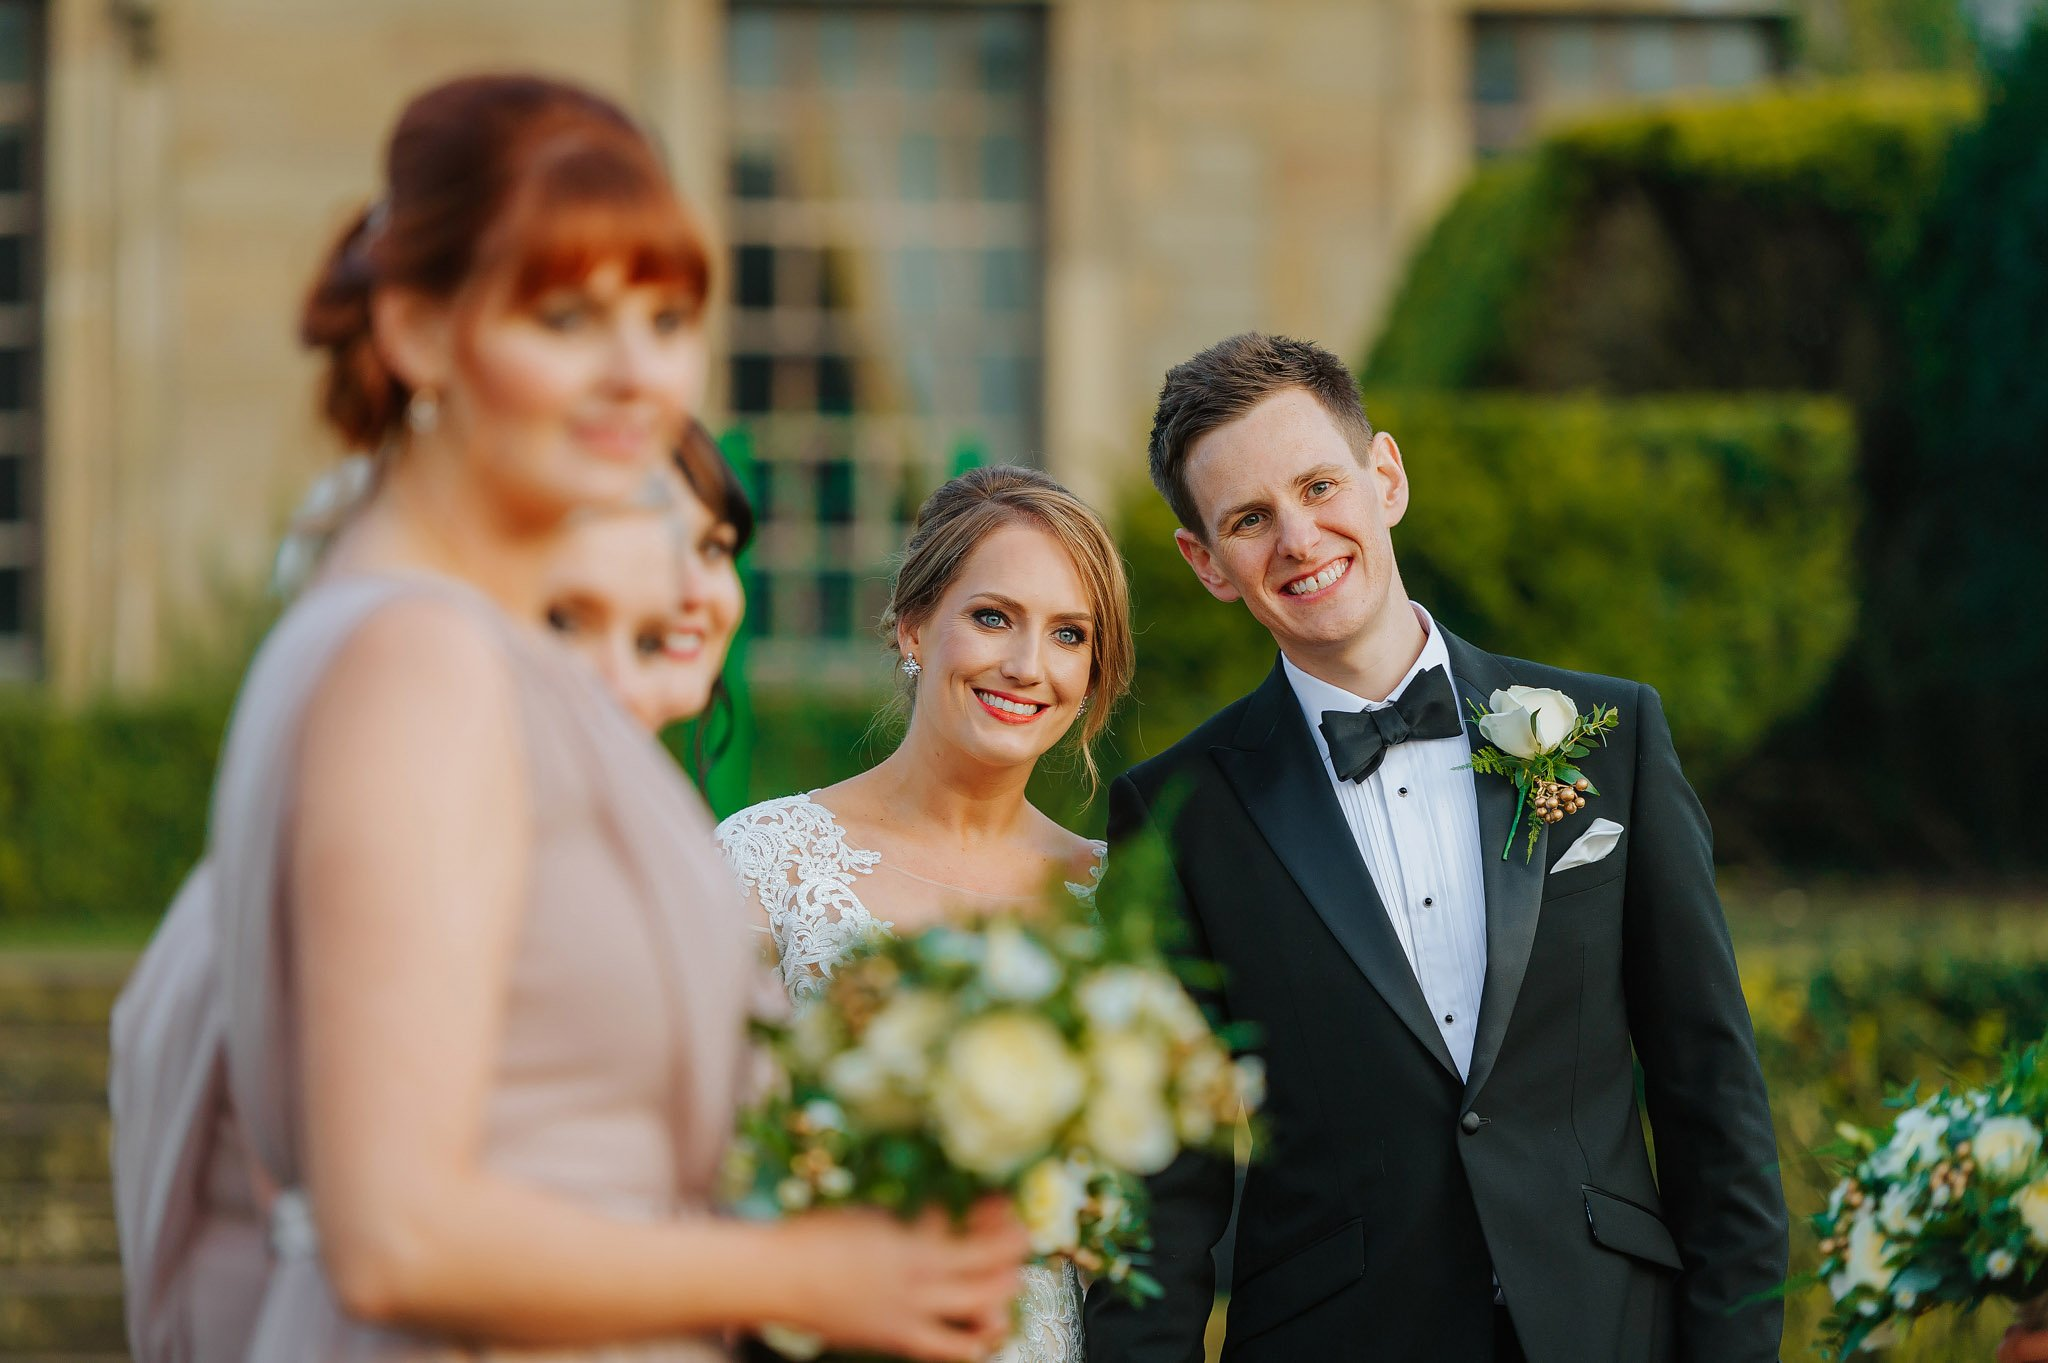 coombe abbey wedding coventry 77 - Coombe Abbey wedding in Coventry, Warwickshire - Sam + Matt